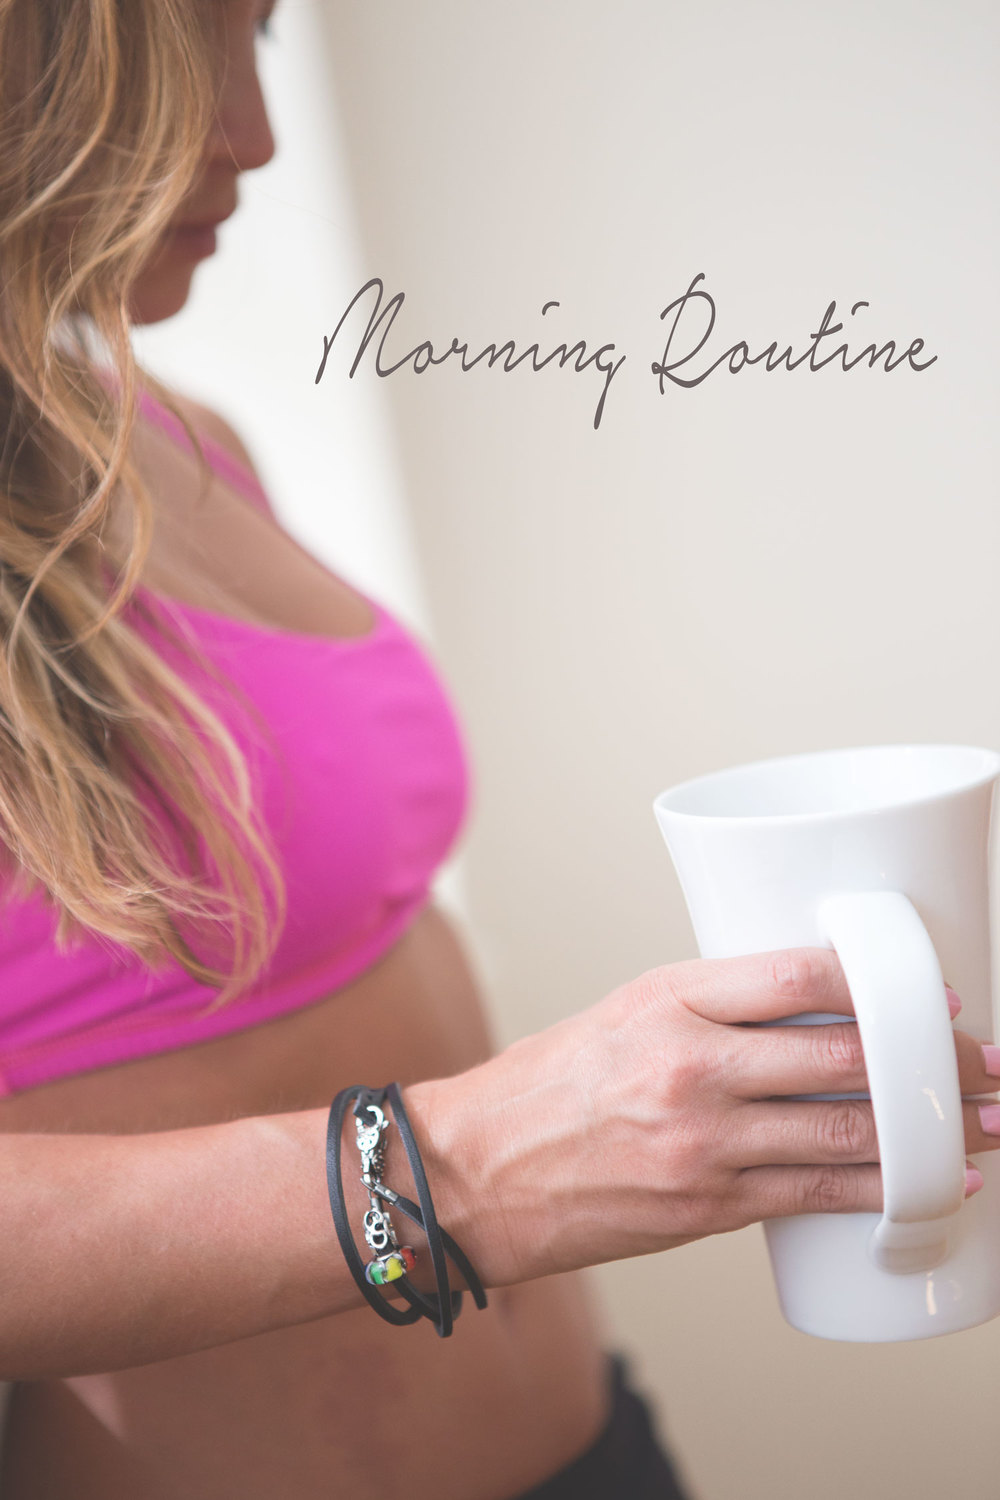 Wearing: lululemon bra, trollbeads bracelet c/o (save 20% with code: IAmCreative) Pin now and share your morning routine!